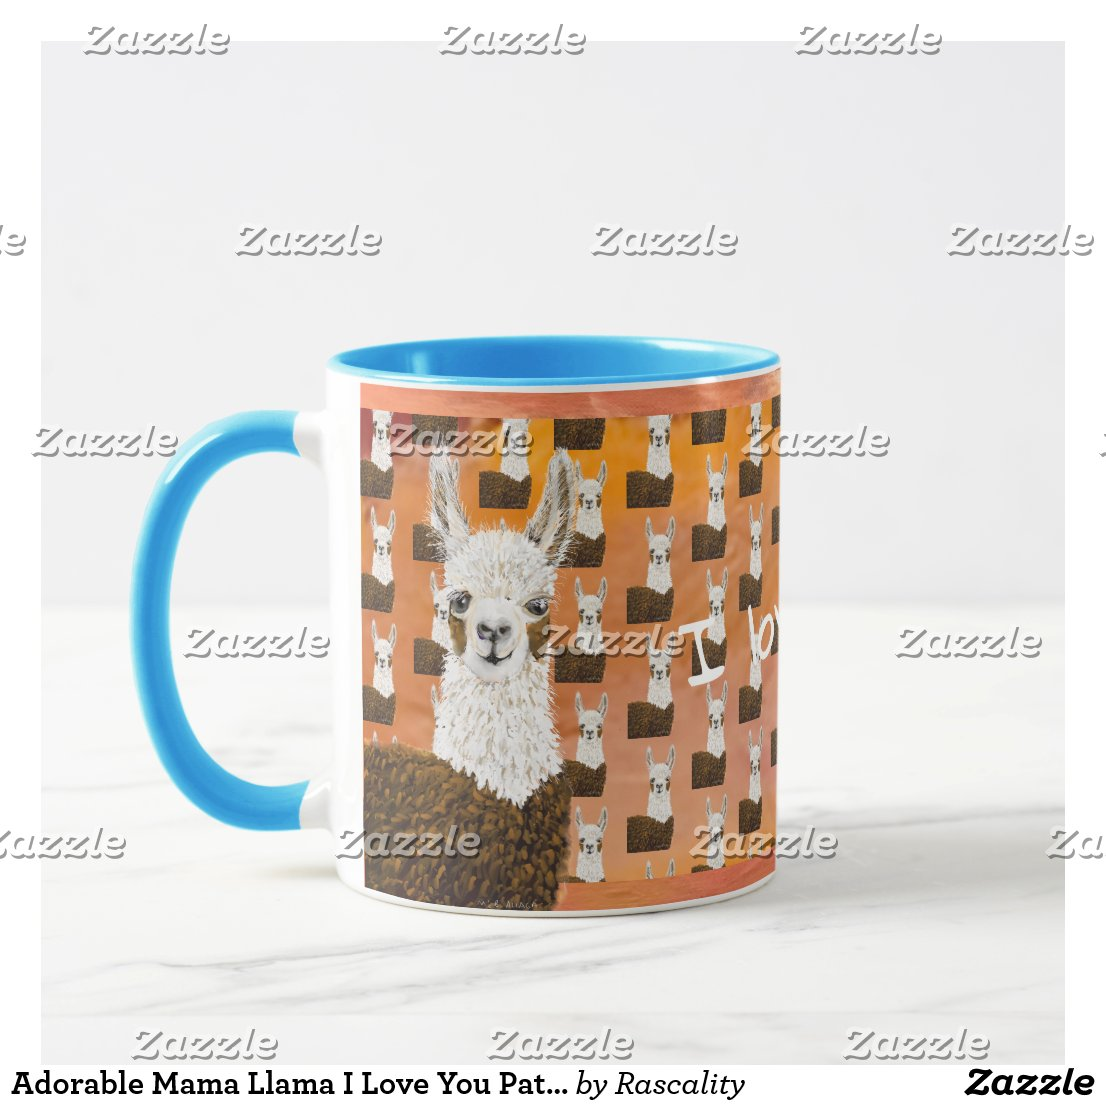 Adorable Mama Llama I Love You Pattern Mug